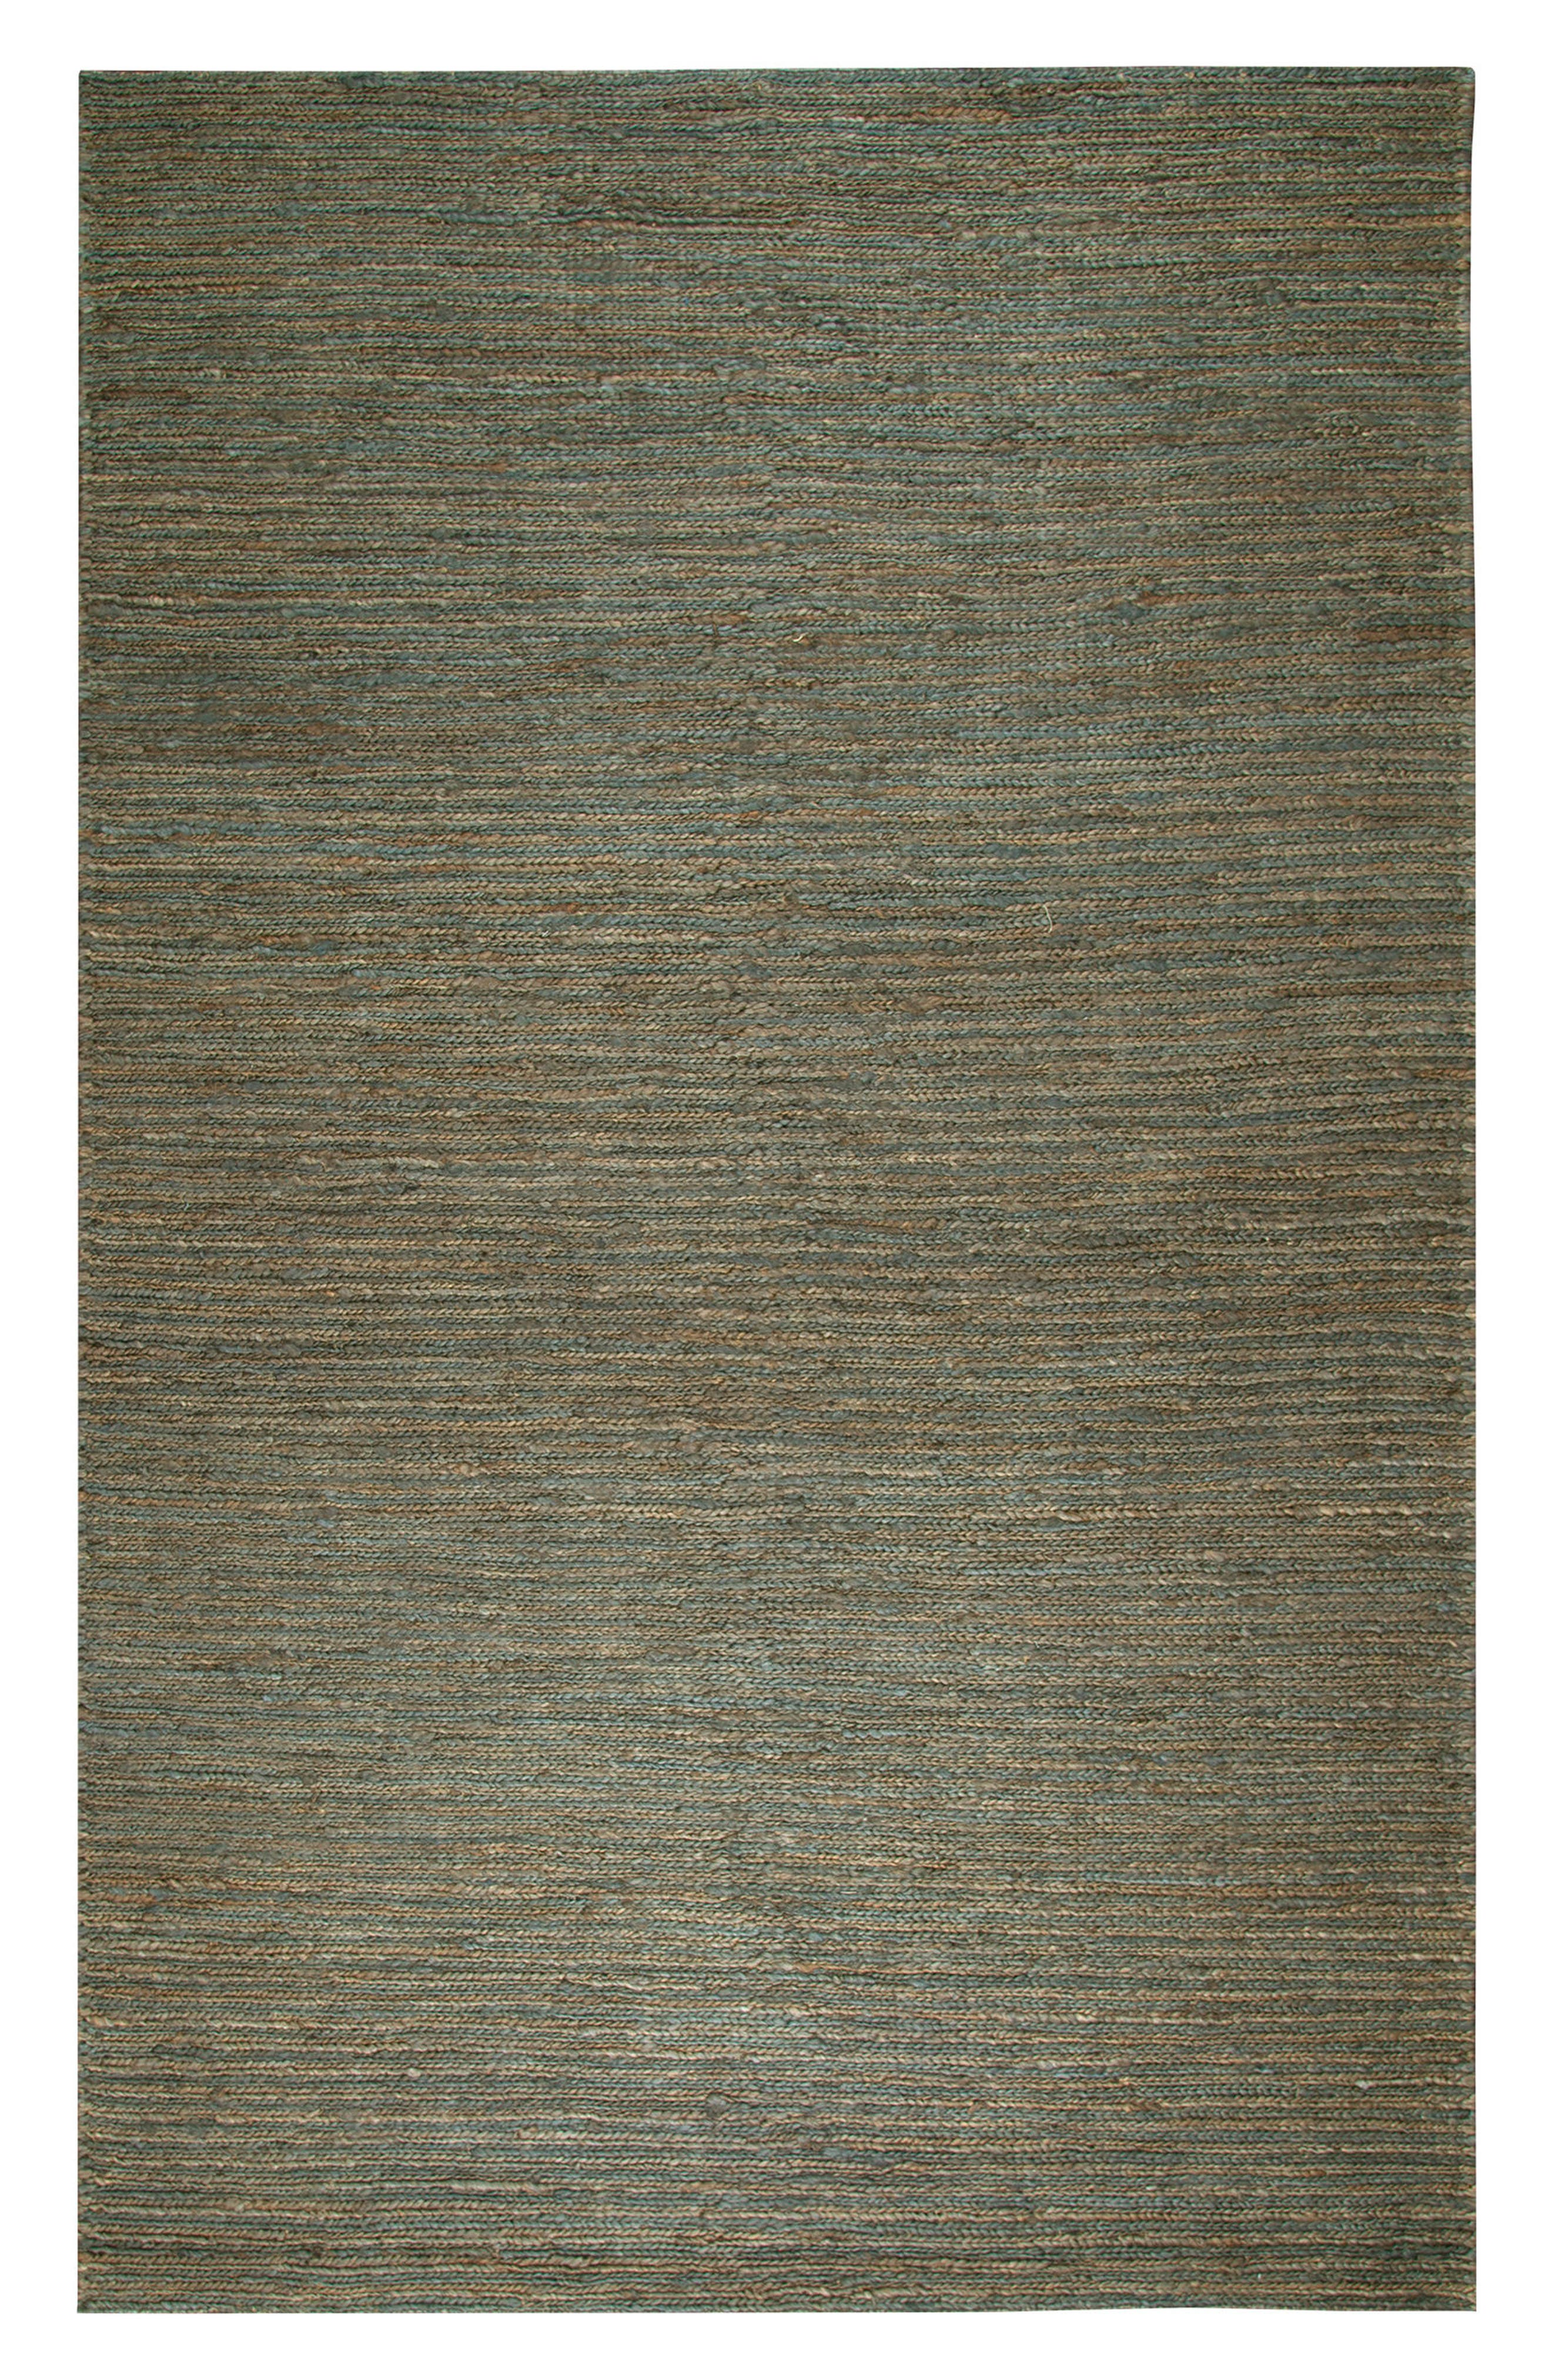 Alternate Image 1 Selected - Rizzy Home 'Whittier Collection' Handwoven Jute Area Rug